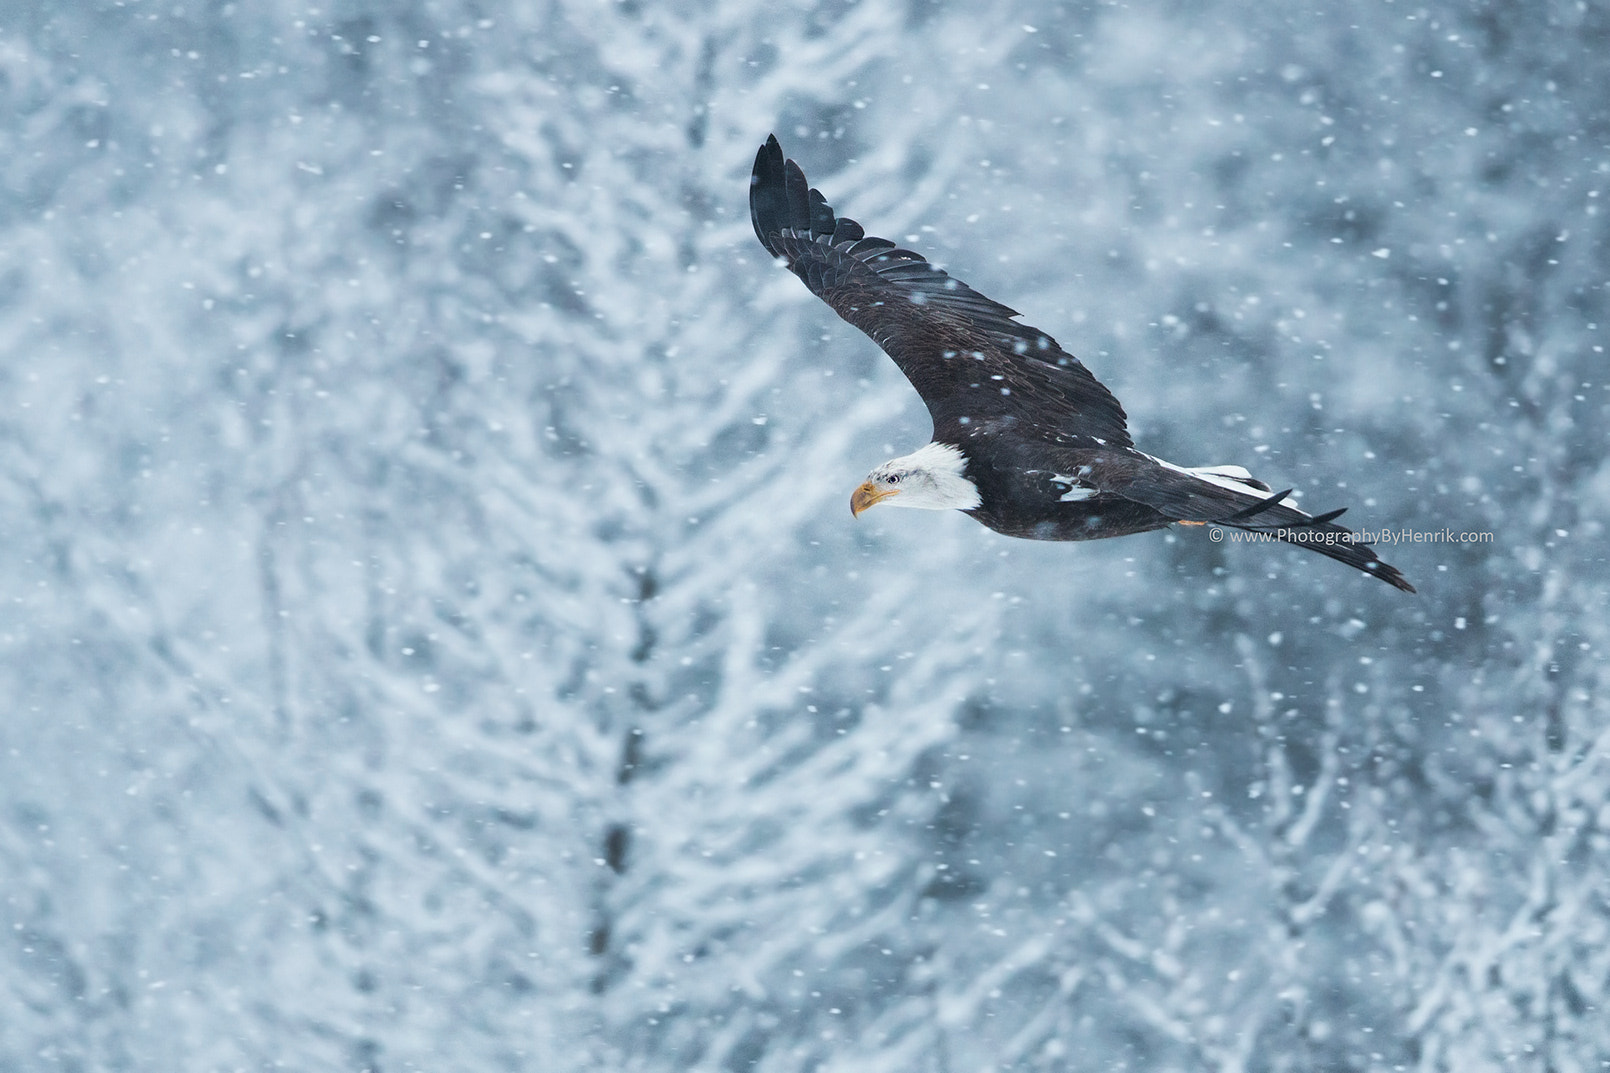 Photograph Winter is Here by Henrik Nilsson on 500px